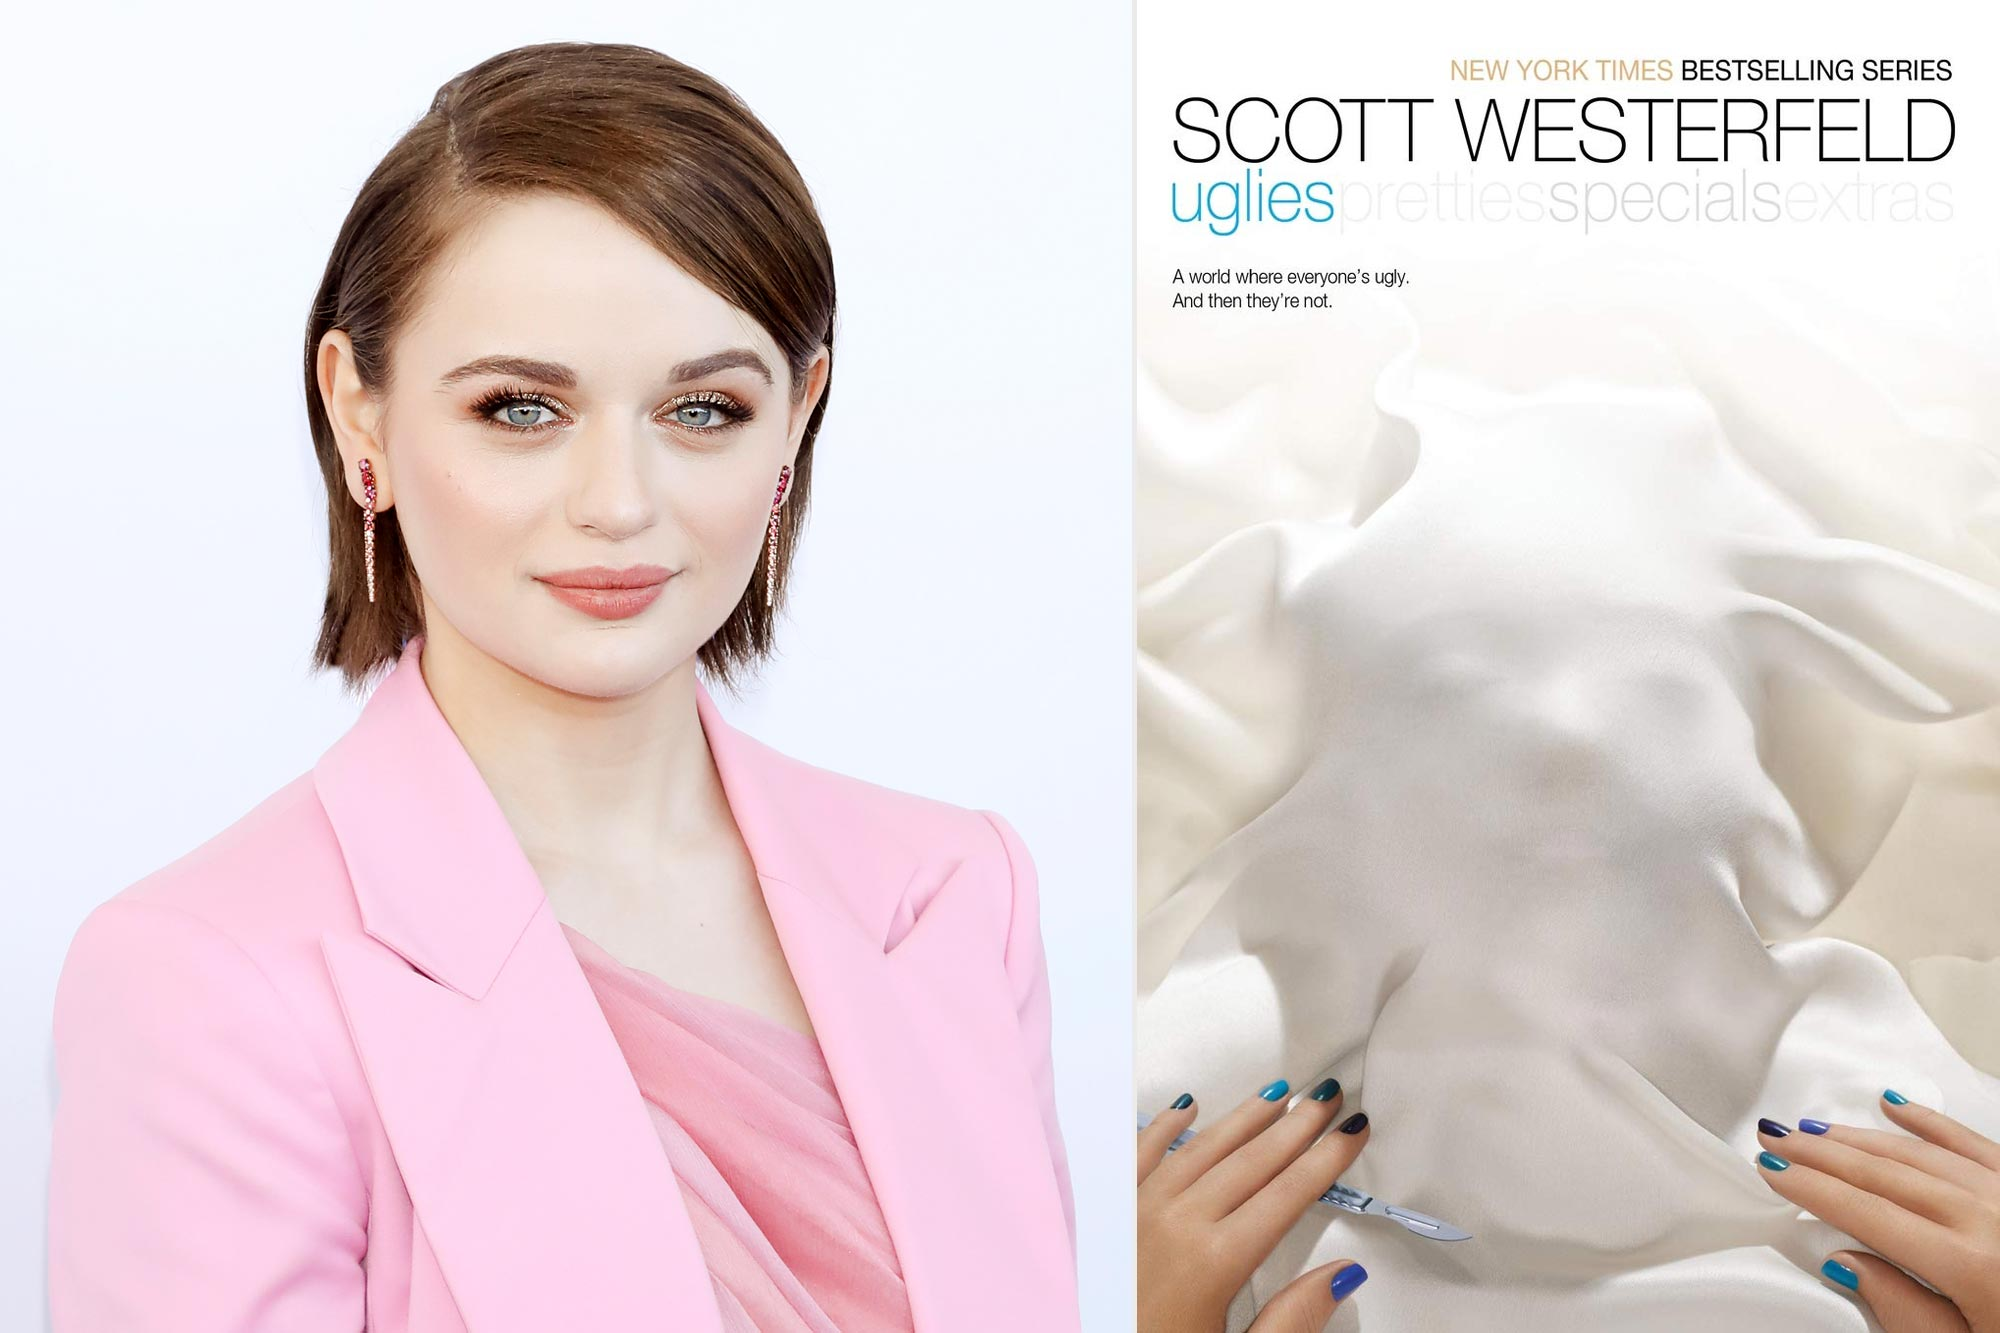 Joey King; Uglies by Scott Westerfeld